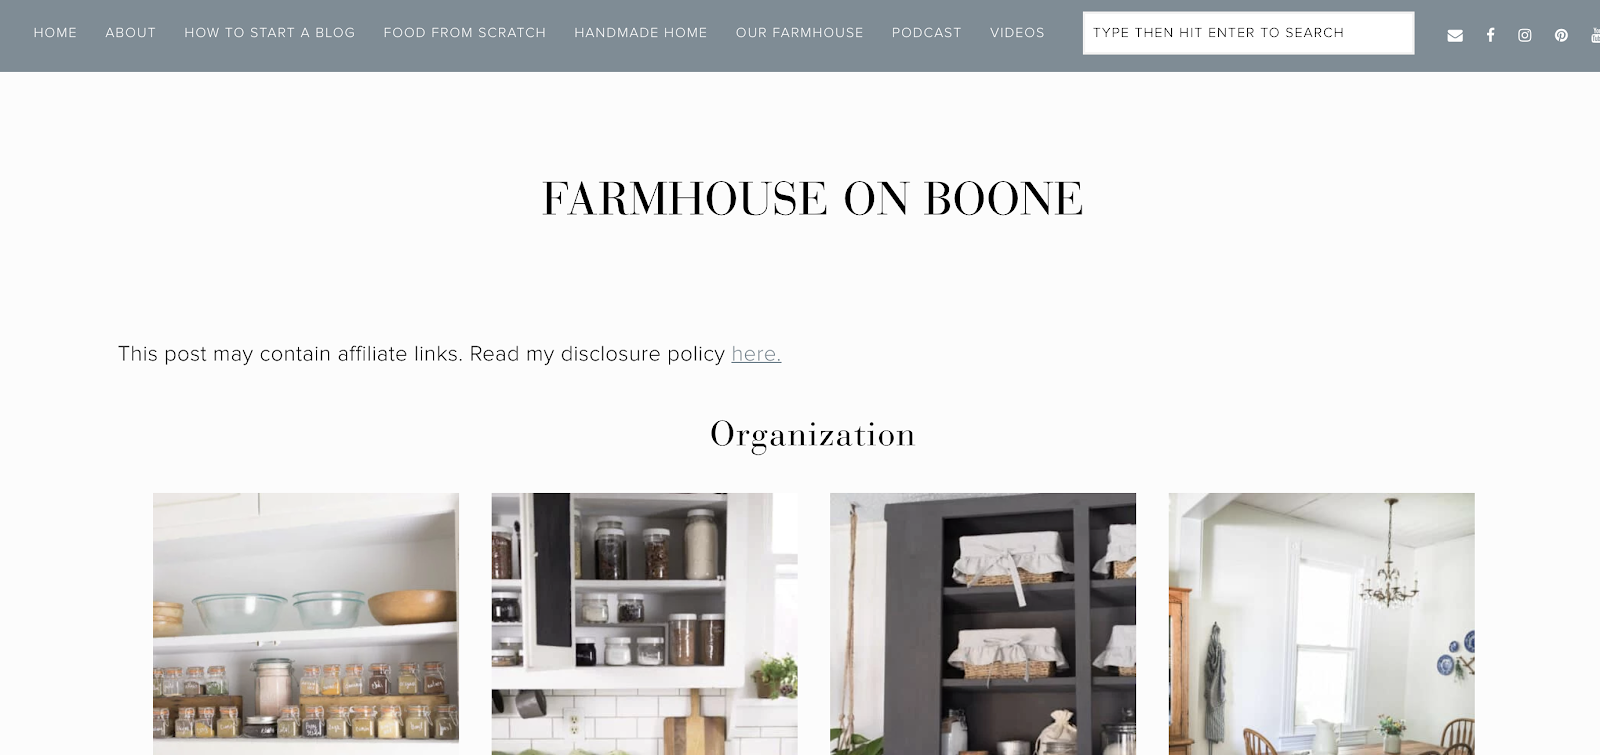 Farmhouse on the Boone Homepage Screenshot and Example of Home and Wellness Niche